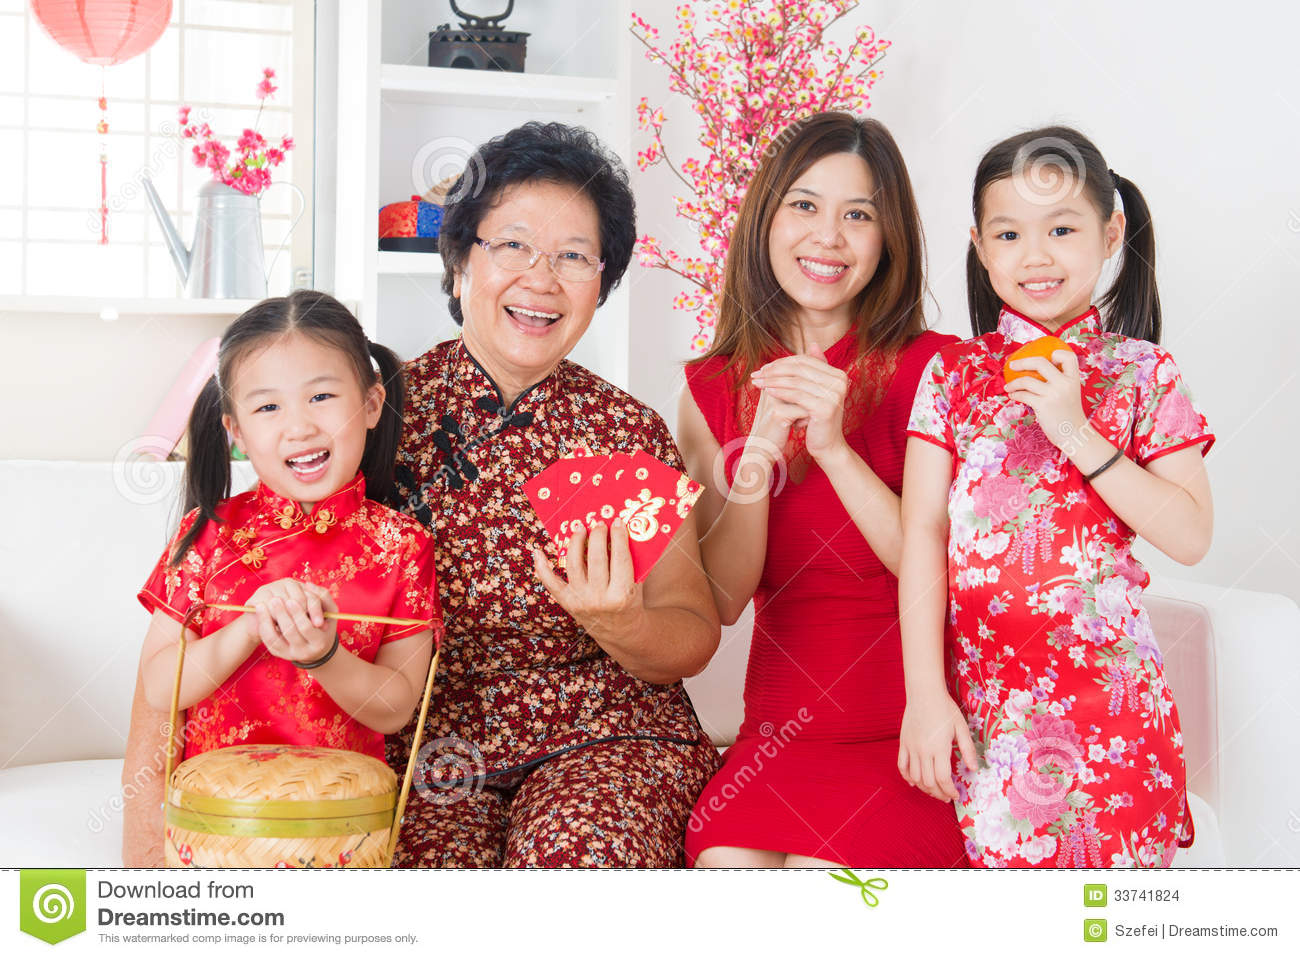 Chinese New Year's Eve Festivals and Celebrations